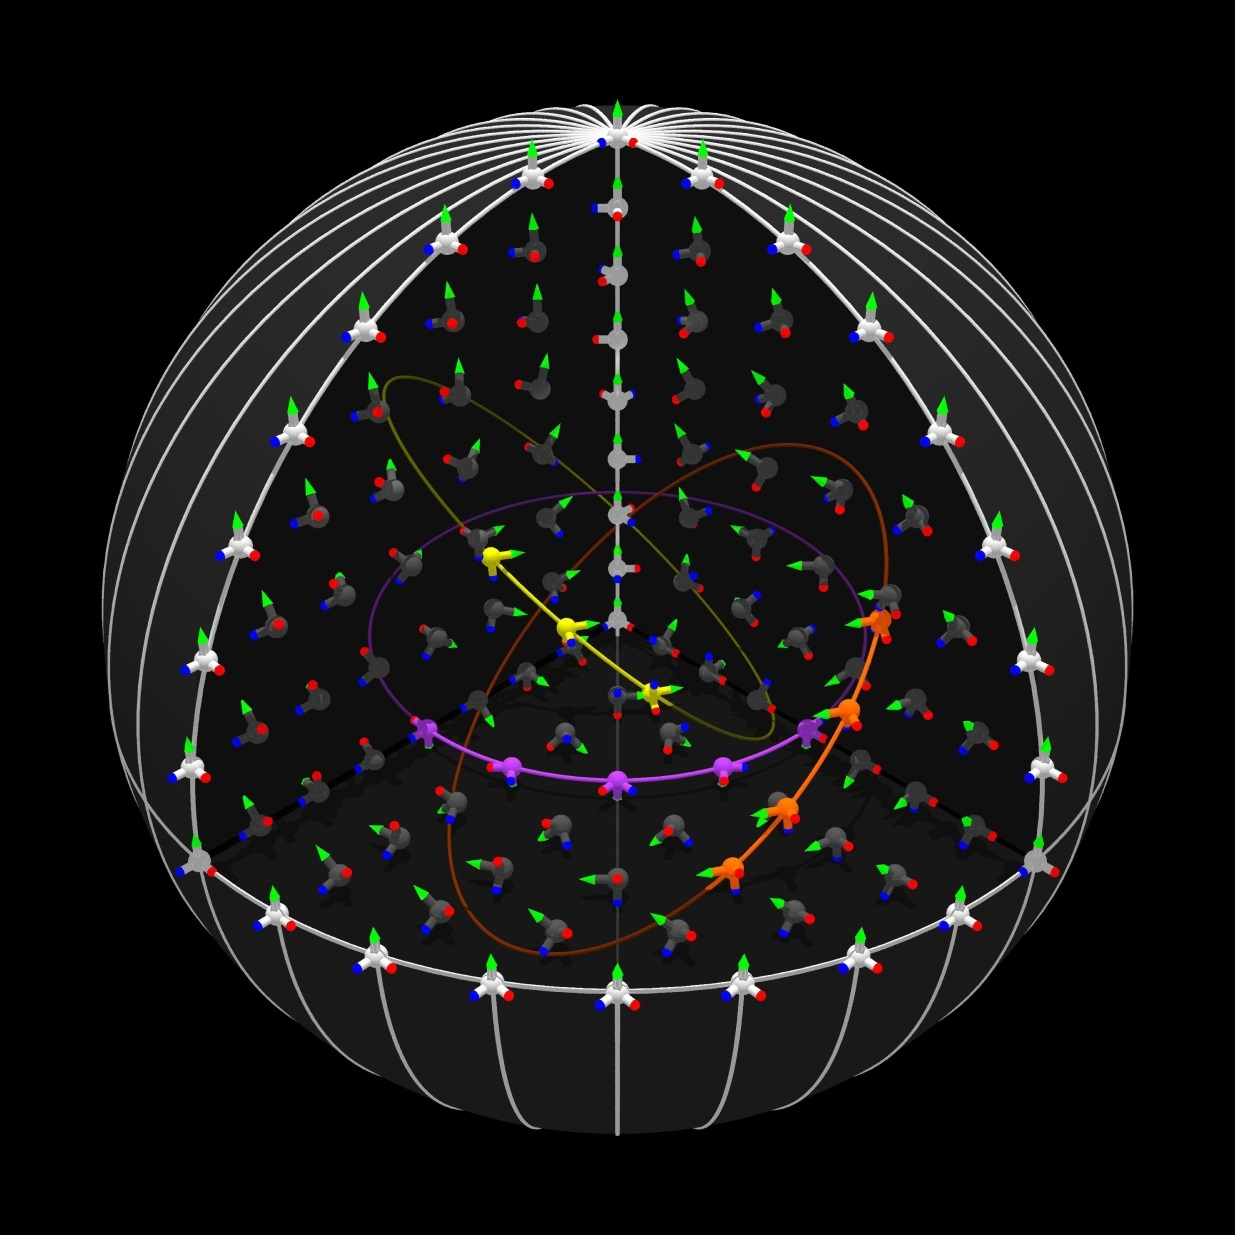 Cutaway view of the 3D skyrmion spin structure